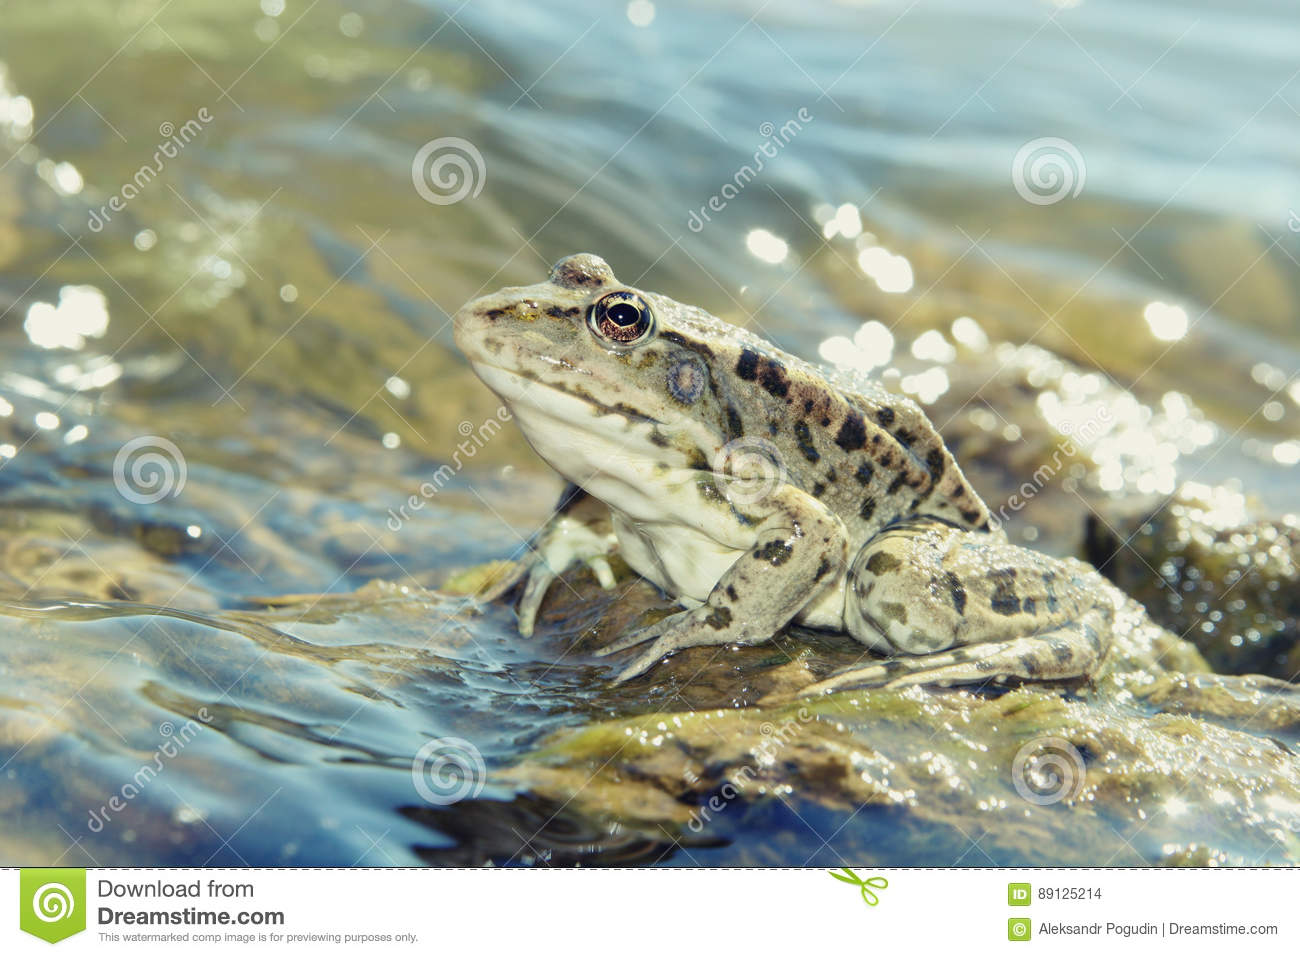 Green big frog in shallow glittering water close up